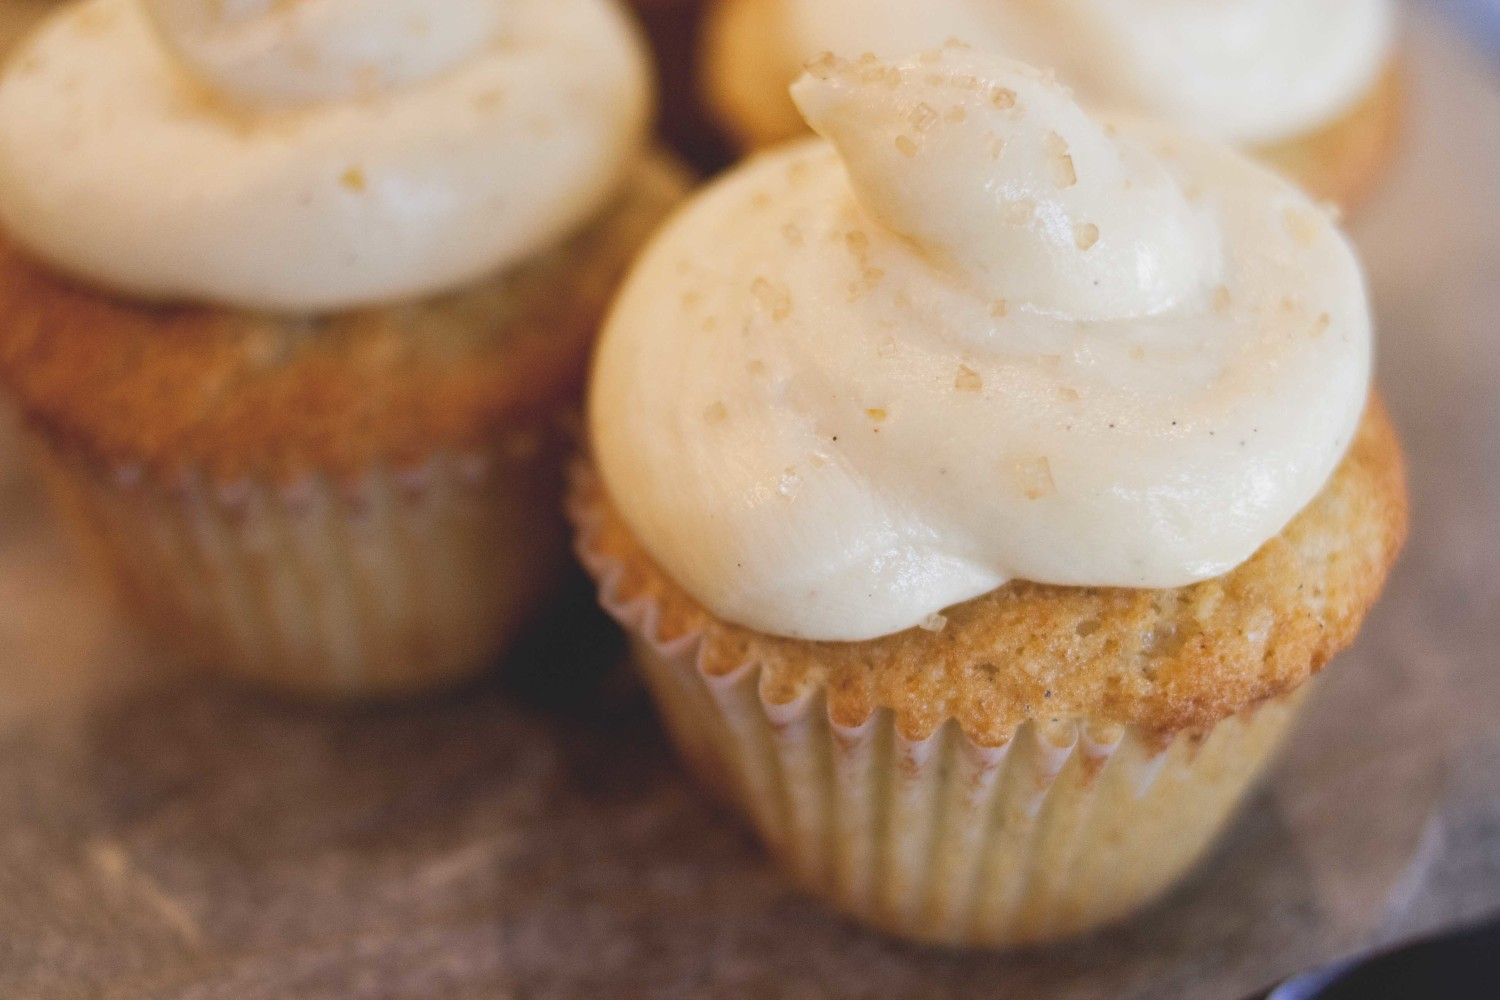 Cardamom cupcakes with rose water + honey buttercream